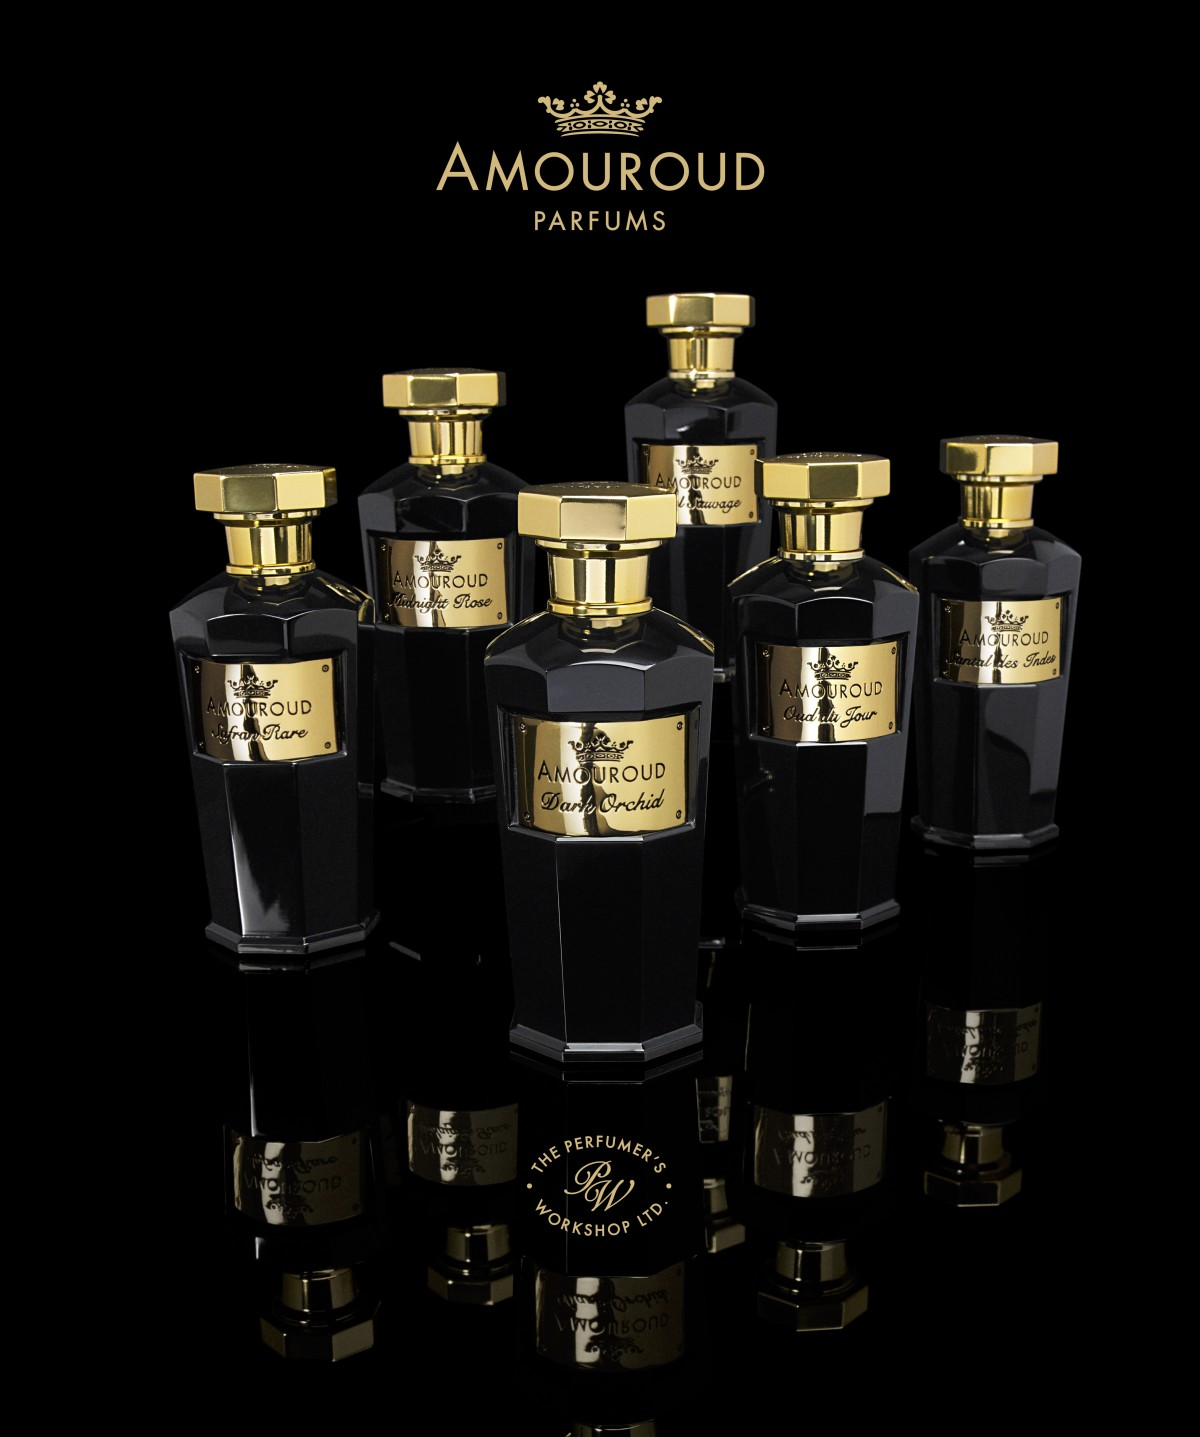 Amouroud Parfums